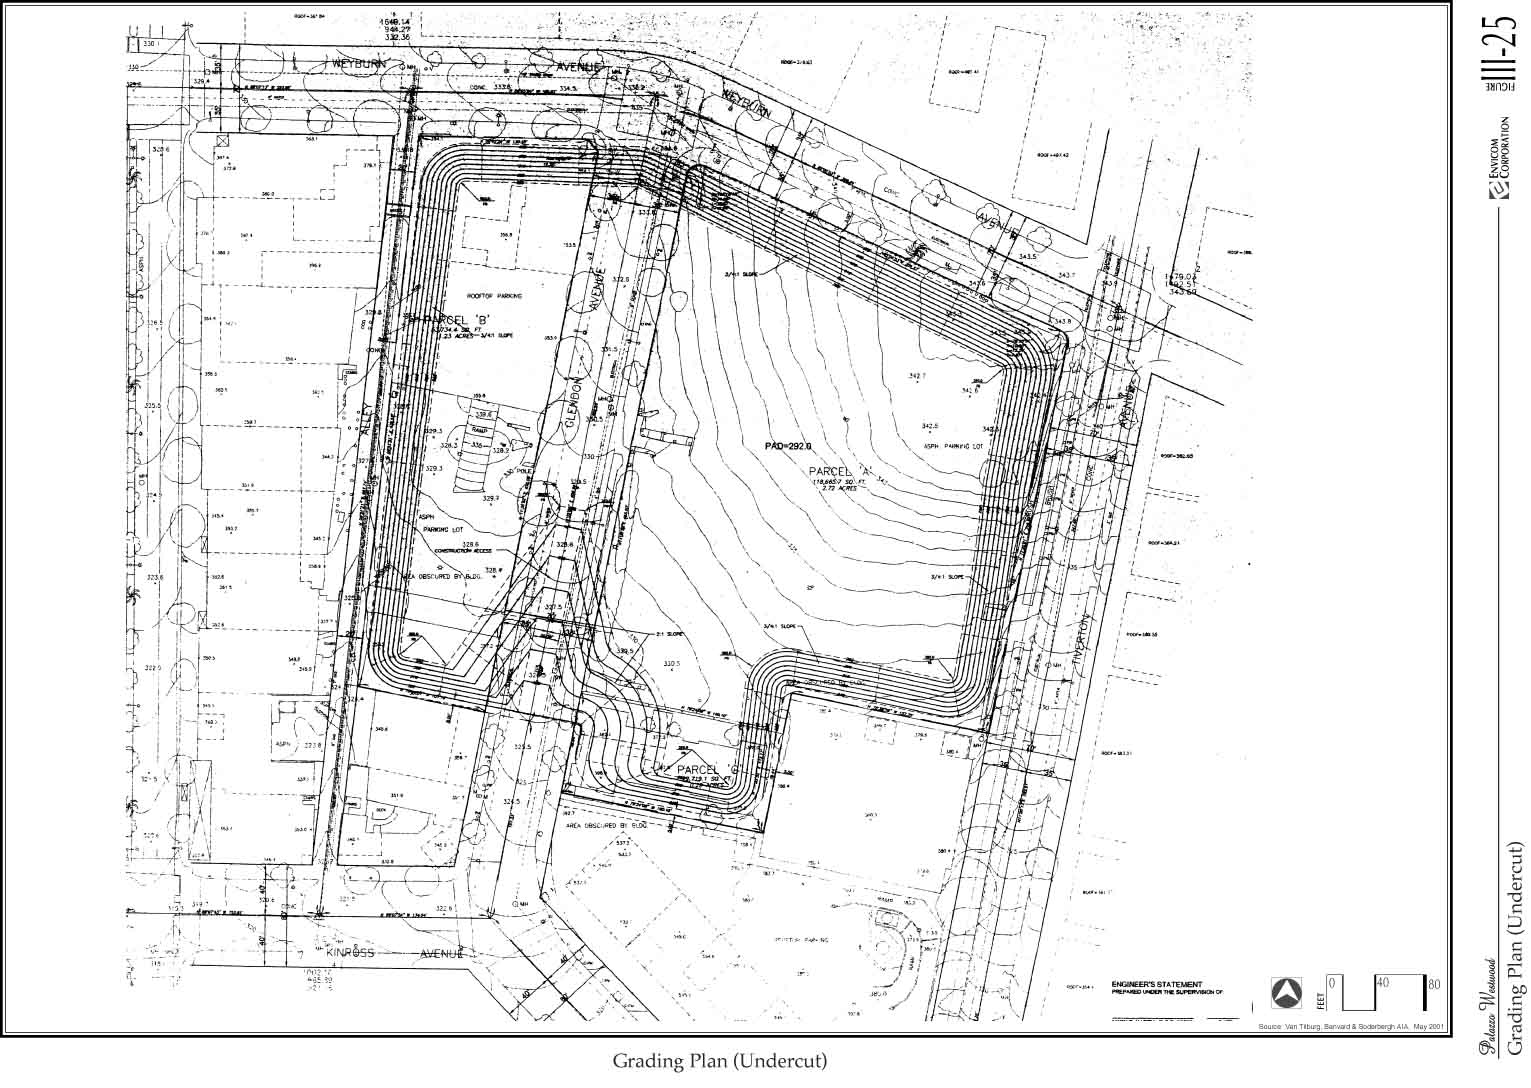 Palazzo Westwood Project Draft EIR – Site Grading Plan